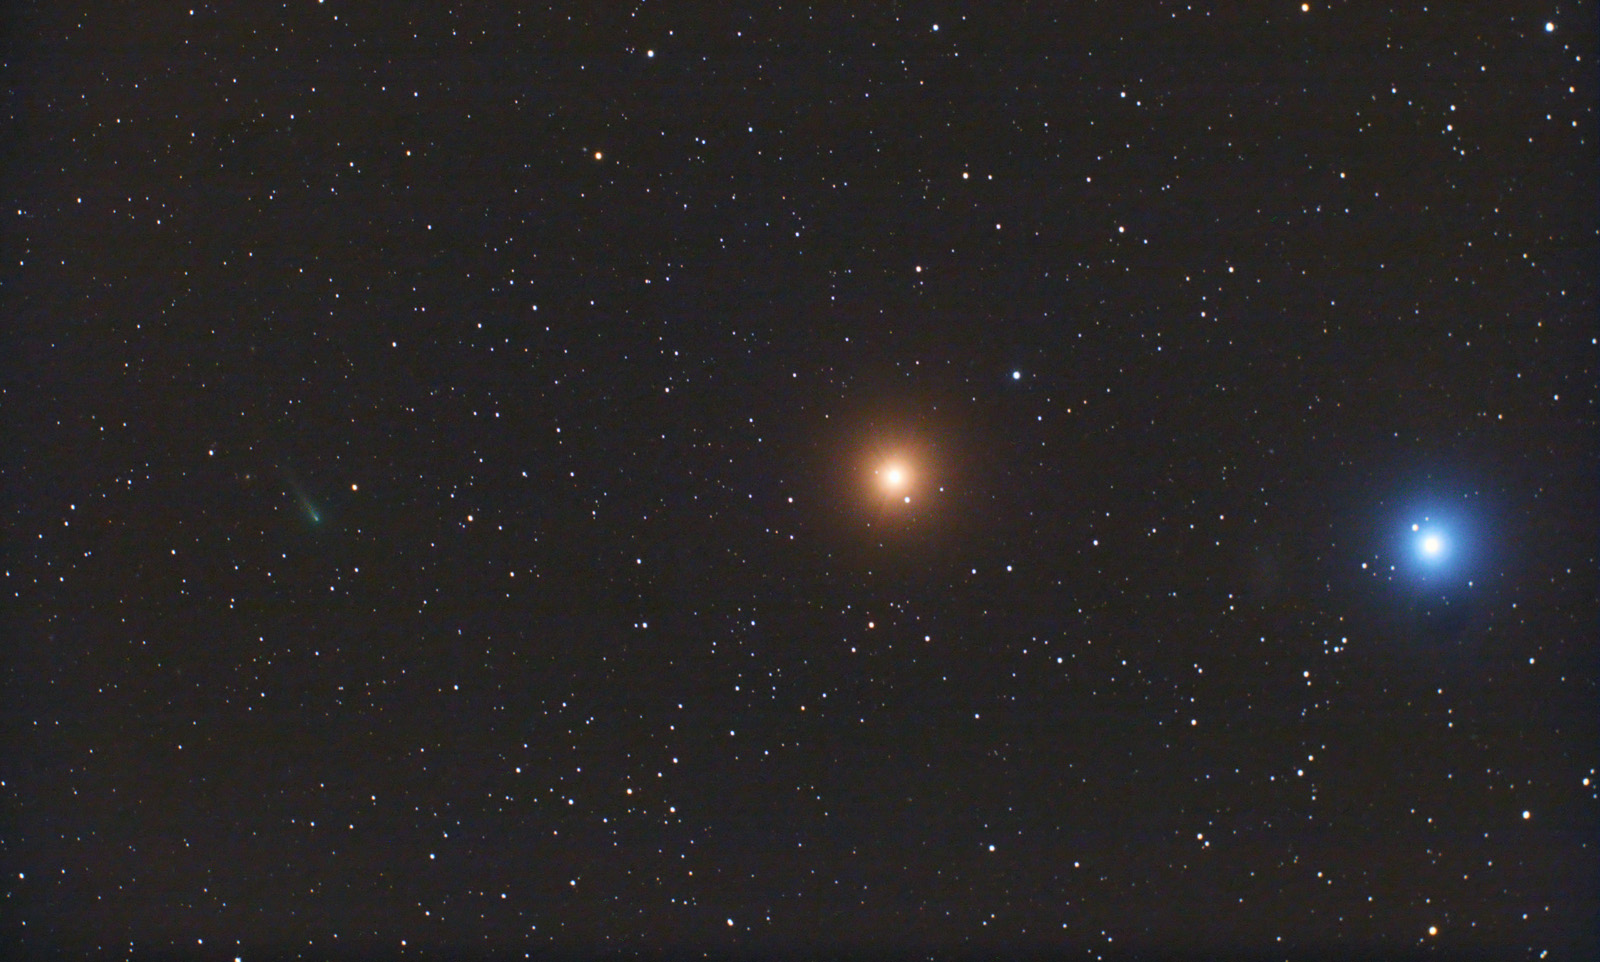 Beautiful Comet ISON Timelapse and Recent Images